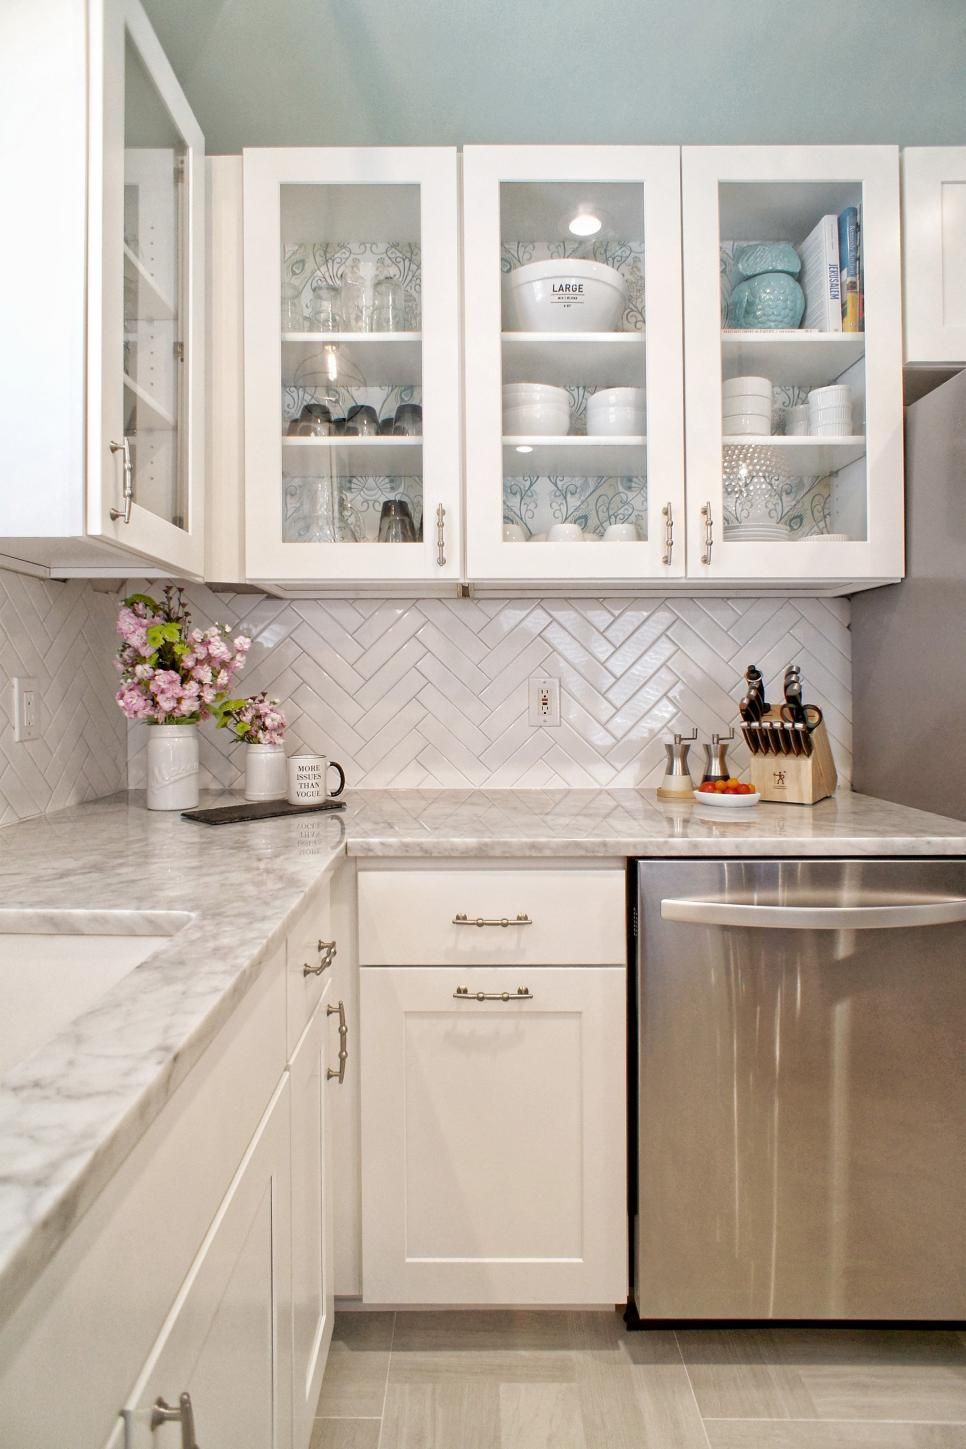 White And Gray Modern Kitchen With Herringbone Backsplash Kitchen Design Kitchen Inspirations Kitchen Renovation